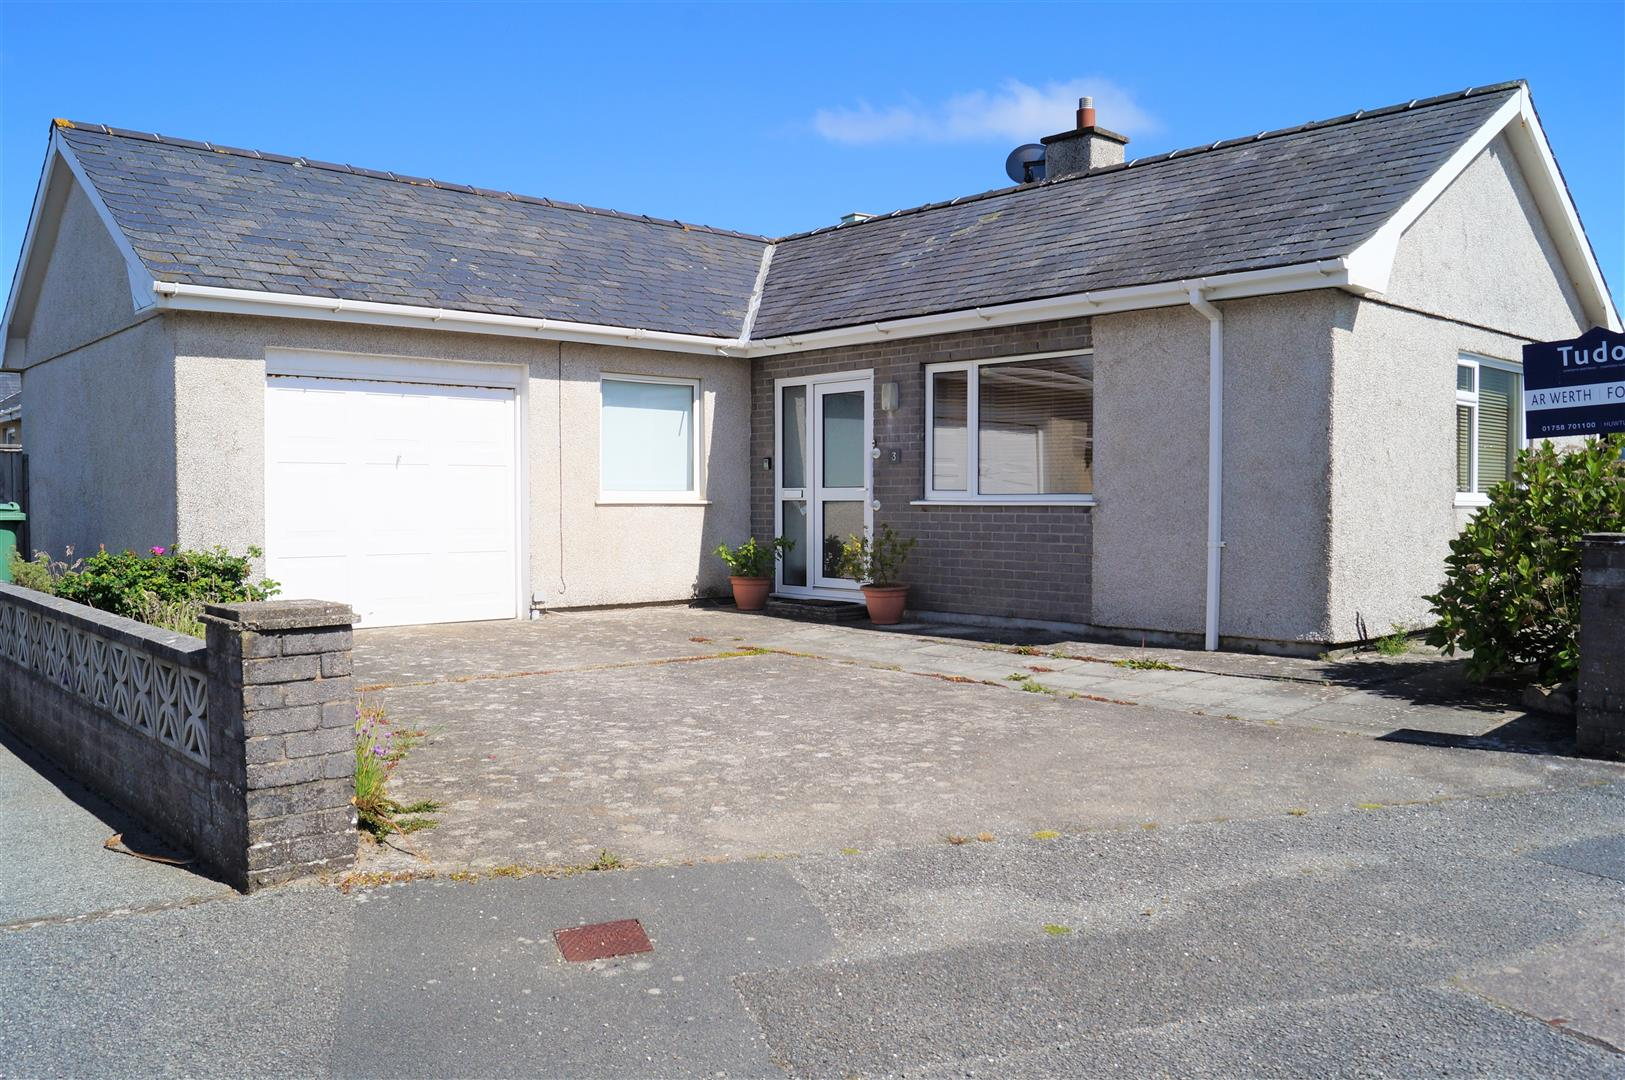 Innes Estate, Pwllheli - £209,950